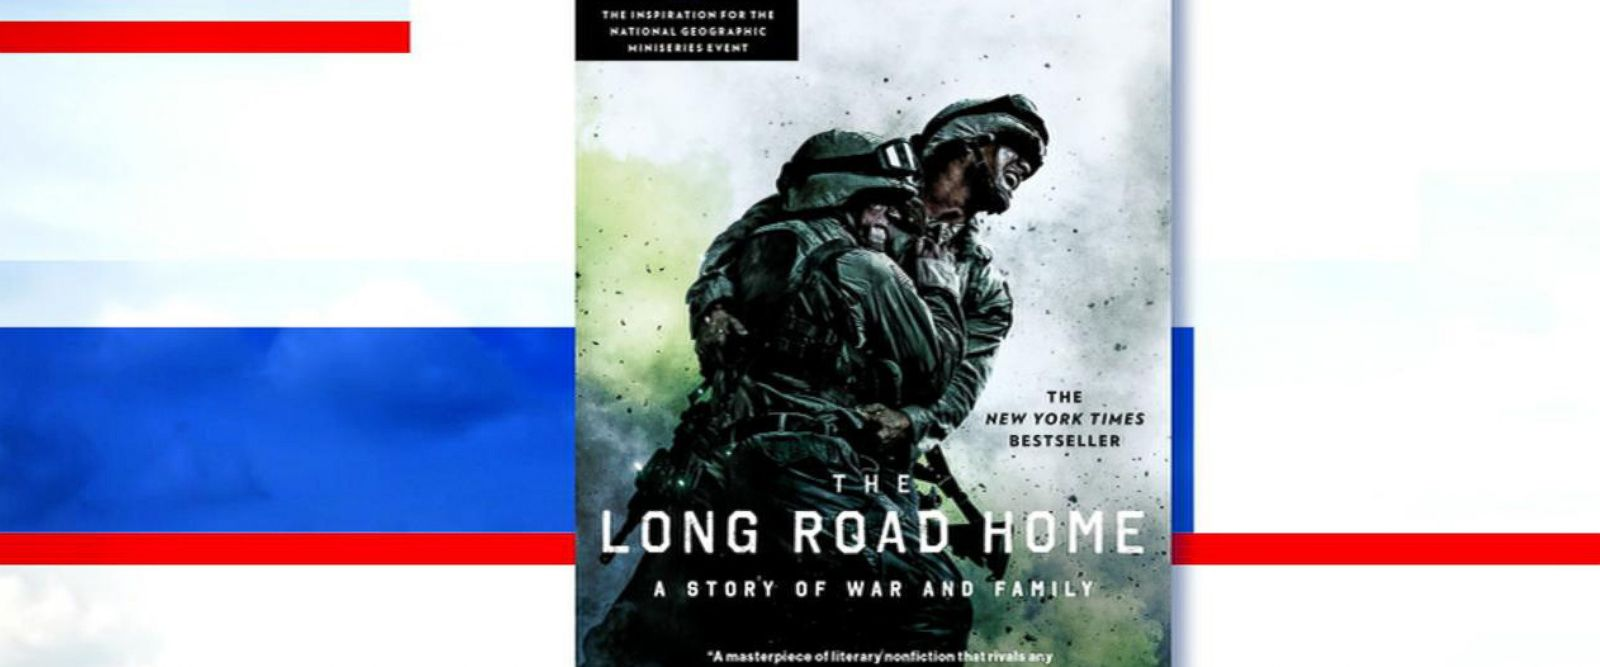 VIDEO: 'The Long Road Home' tells story of war, survival, and sacrifice